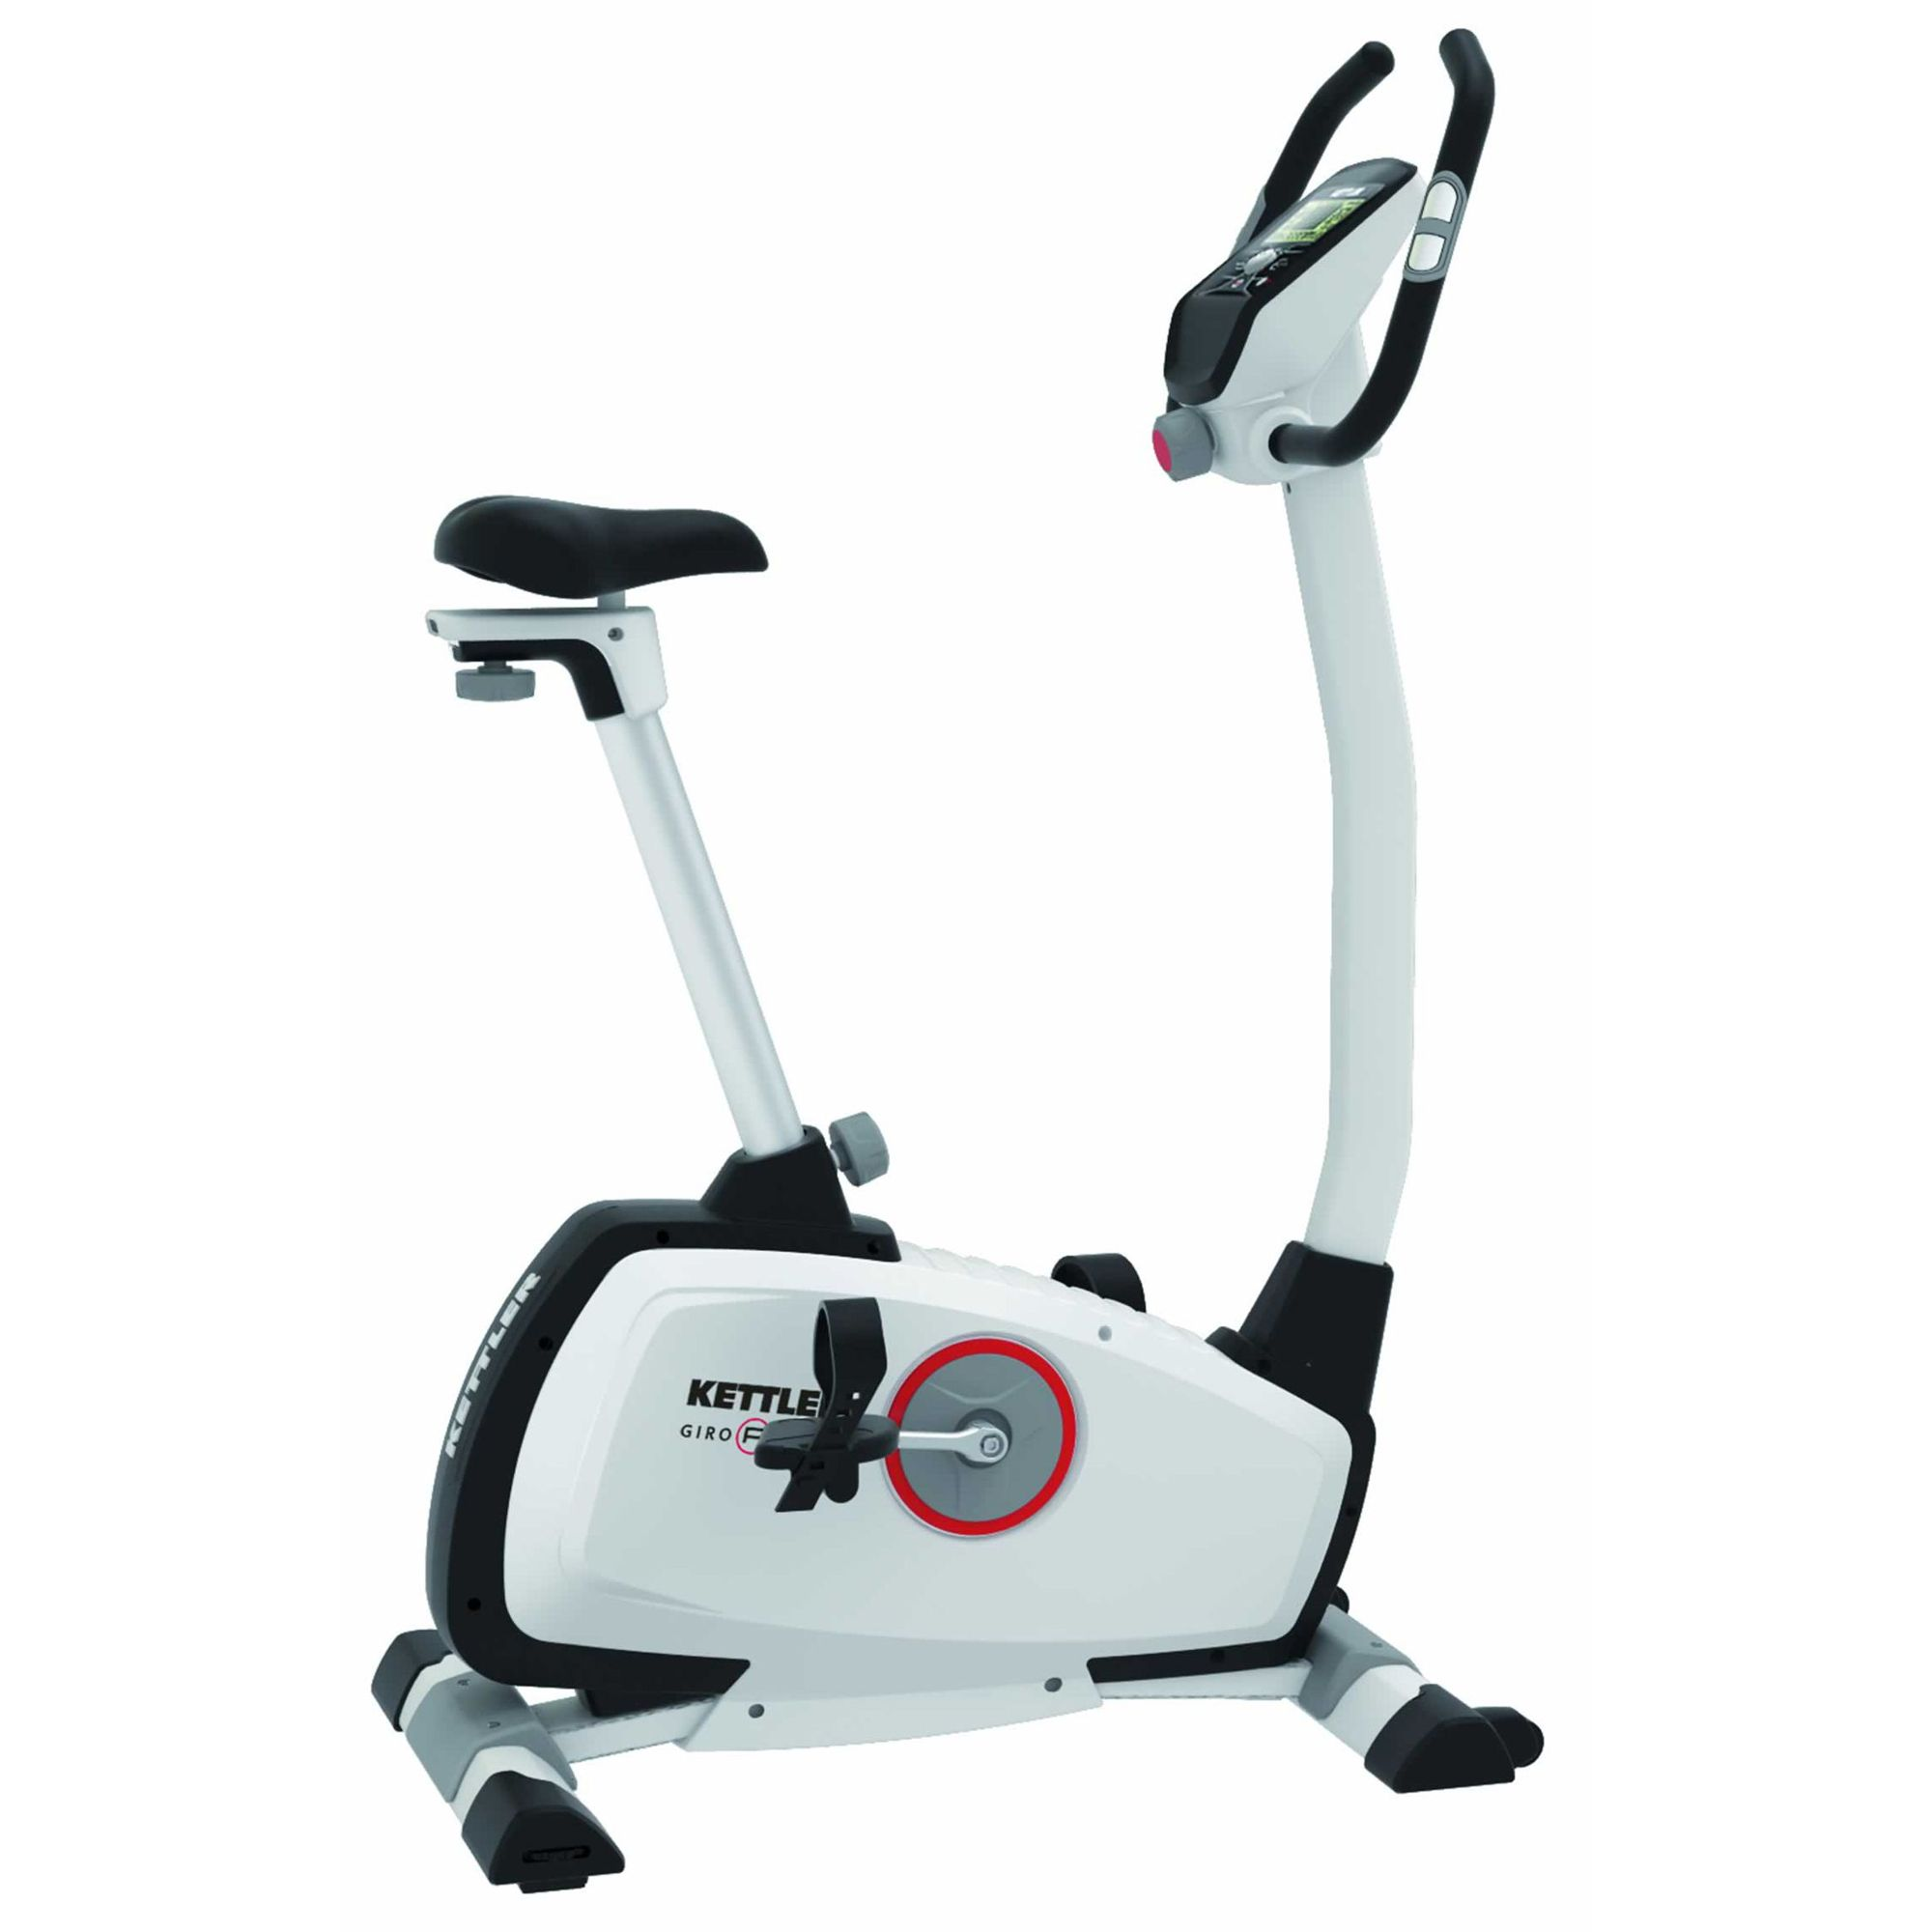 Kettler Fitness Kettler Giro P Advantage Exercise Bike